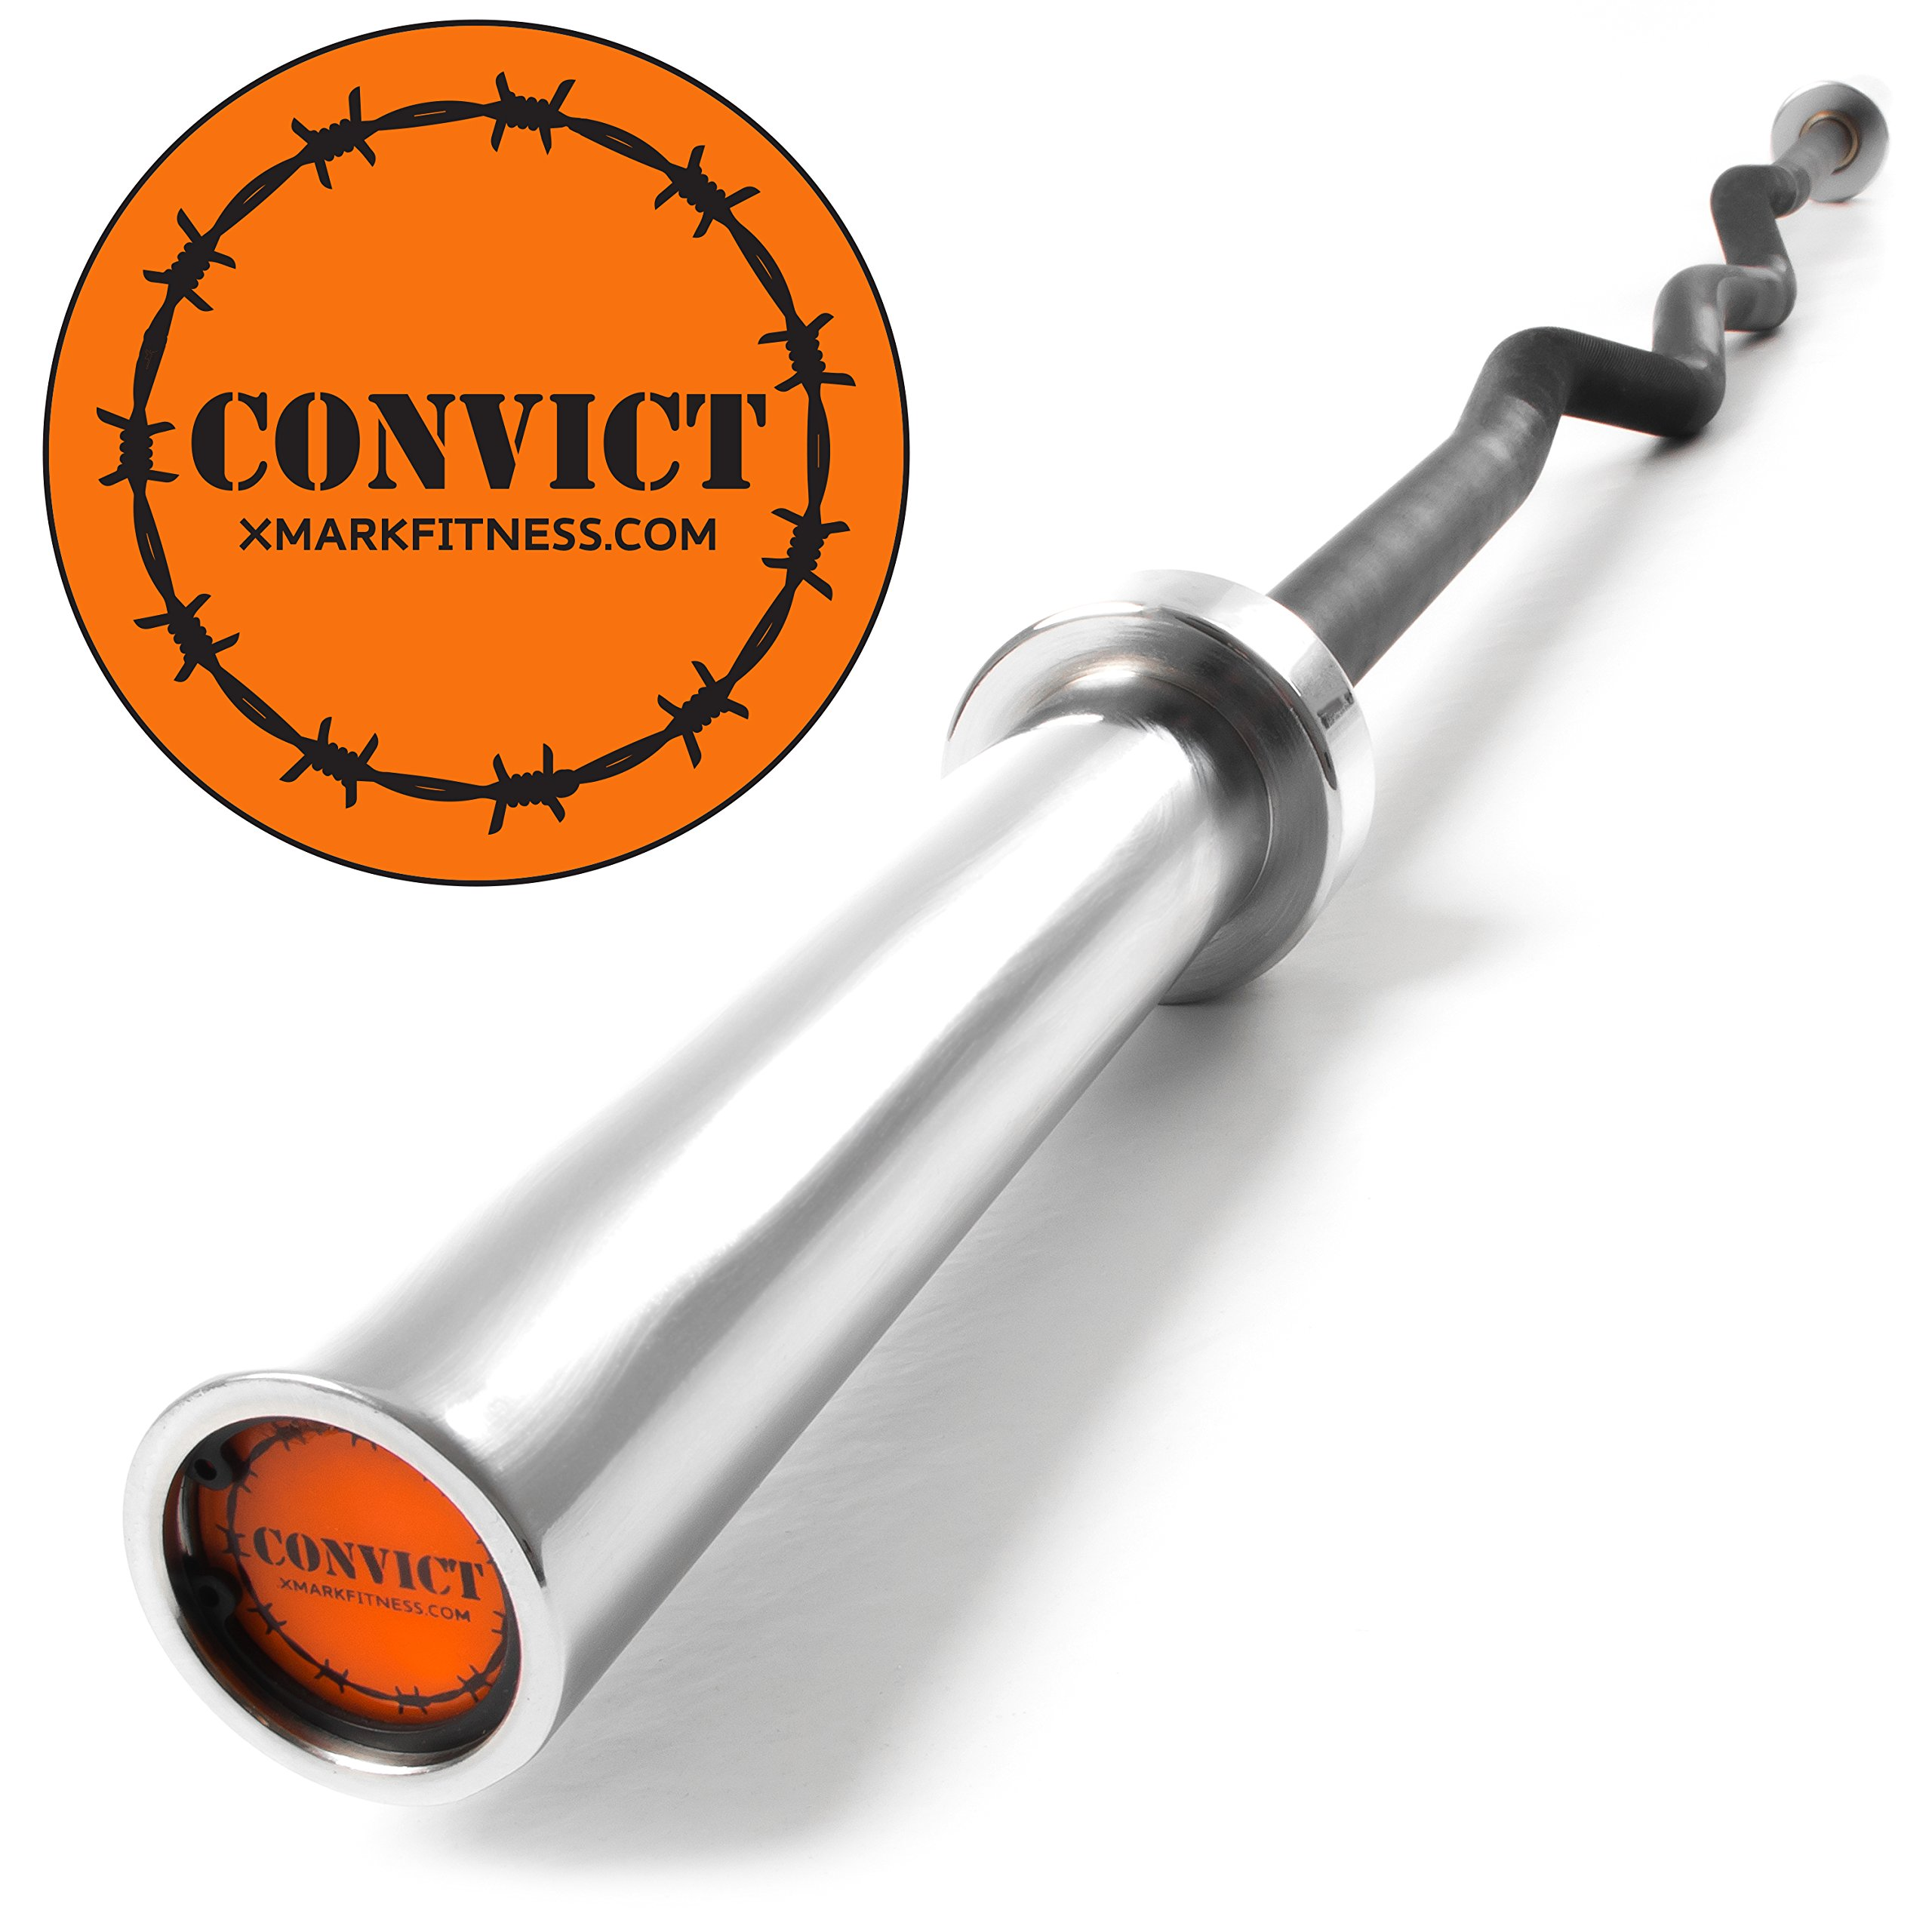 XMark Convict 6' Rackable Olympic Curl Bar with Chrome Sleeves, Brass Bushings, Medium Knurling and 400 lb. Wgt Capacity, Use with Squat Rack, Olympic Bench, Bicep Curl and Triceps Bar Exercises